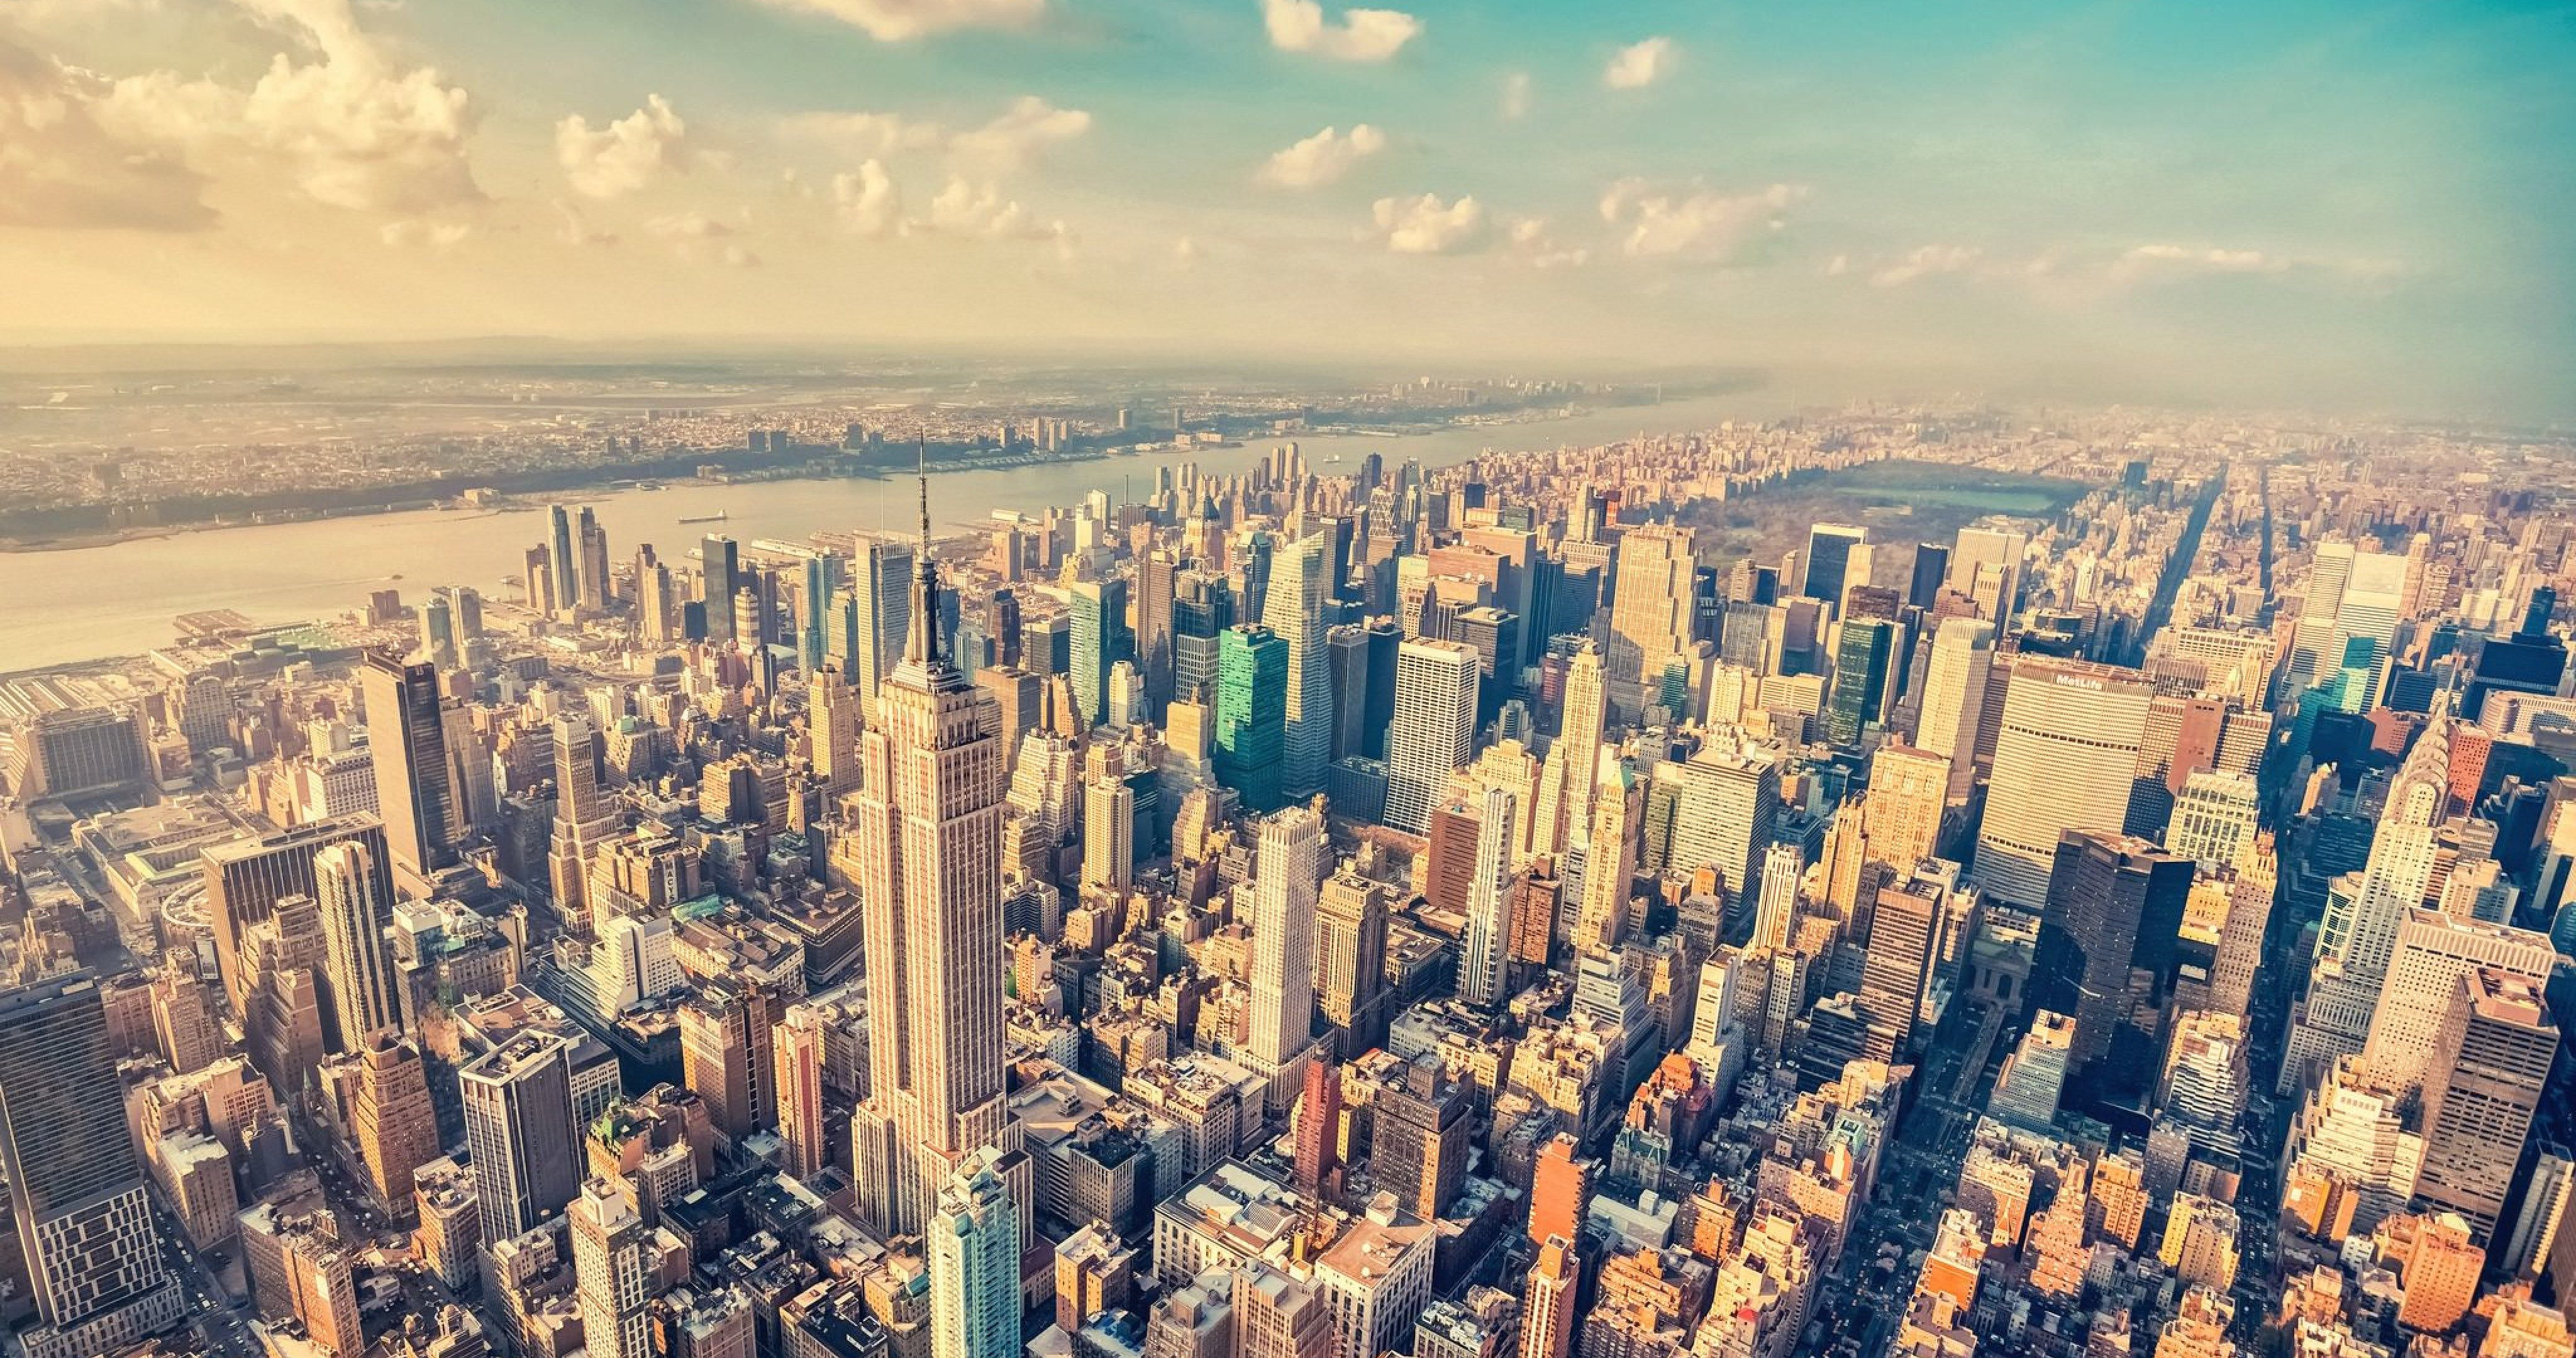 New York Manhattan 20 4k Ultra Hd Wallpaper New York Wallpaper New York Manhattan Wallpaper